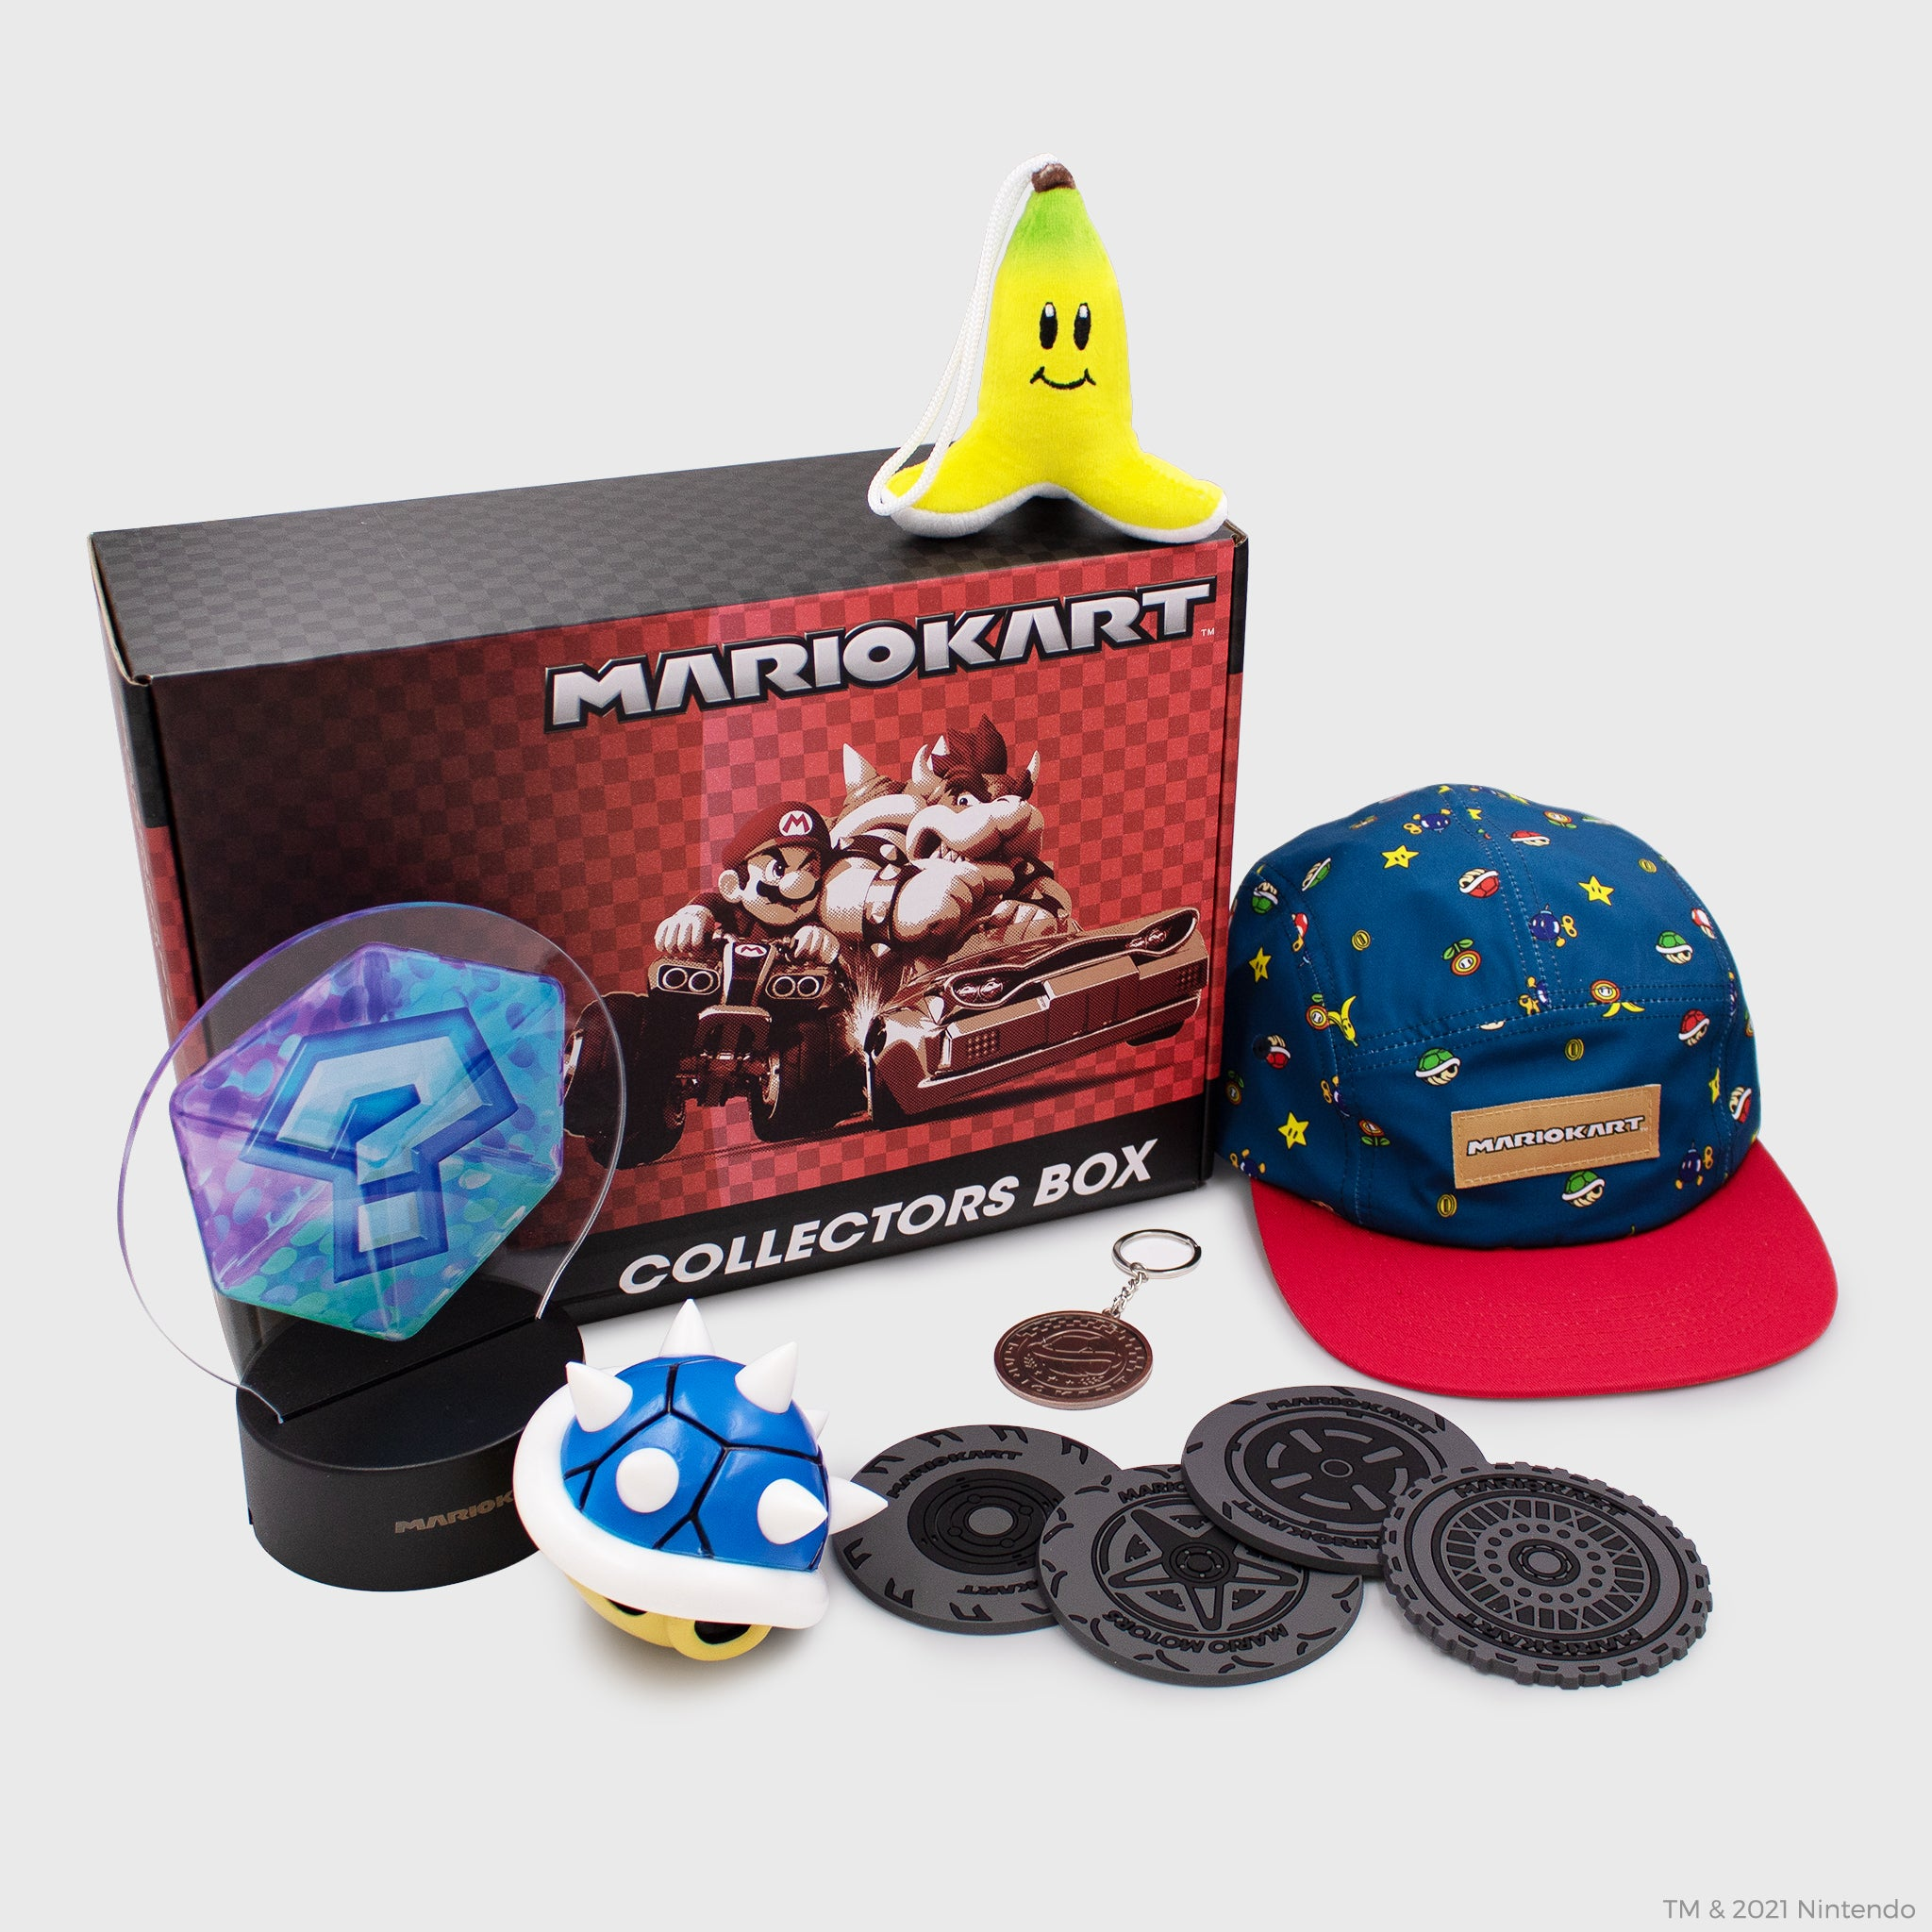 Mario Kart Collector's Box